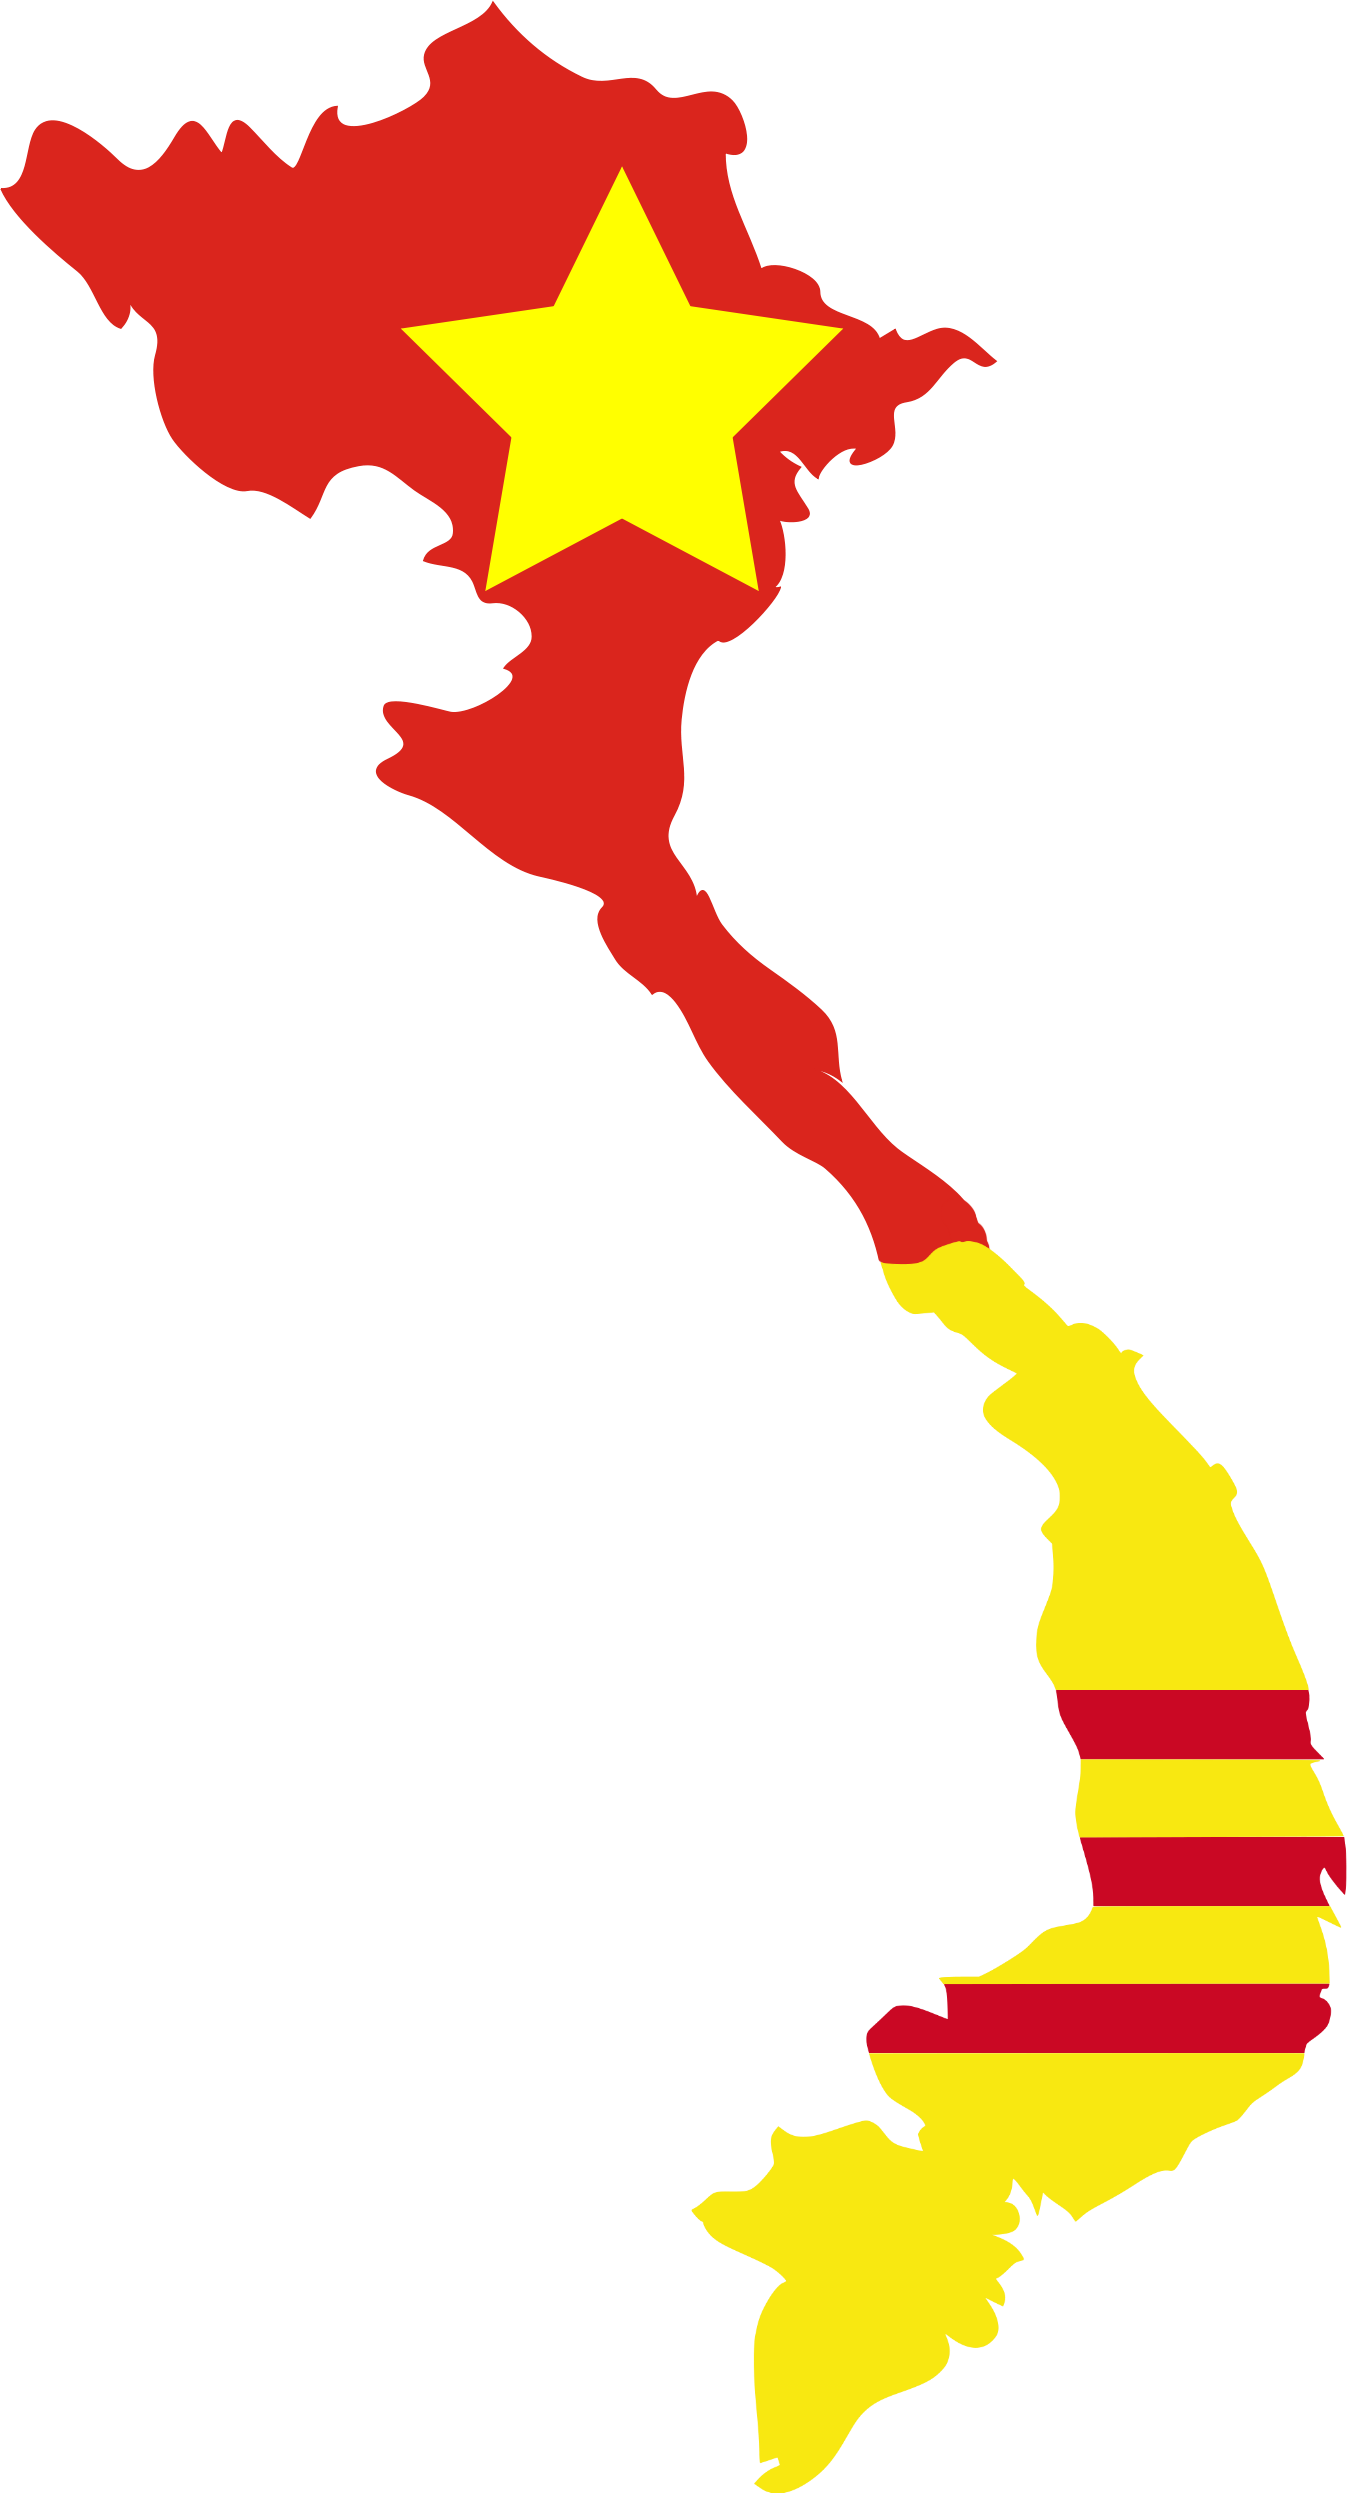 File:Flag map of North & South Vietnam.png   Wikimedia Commons